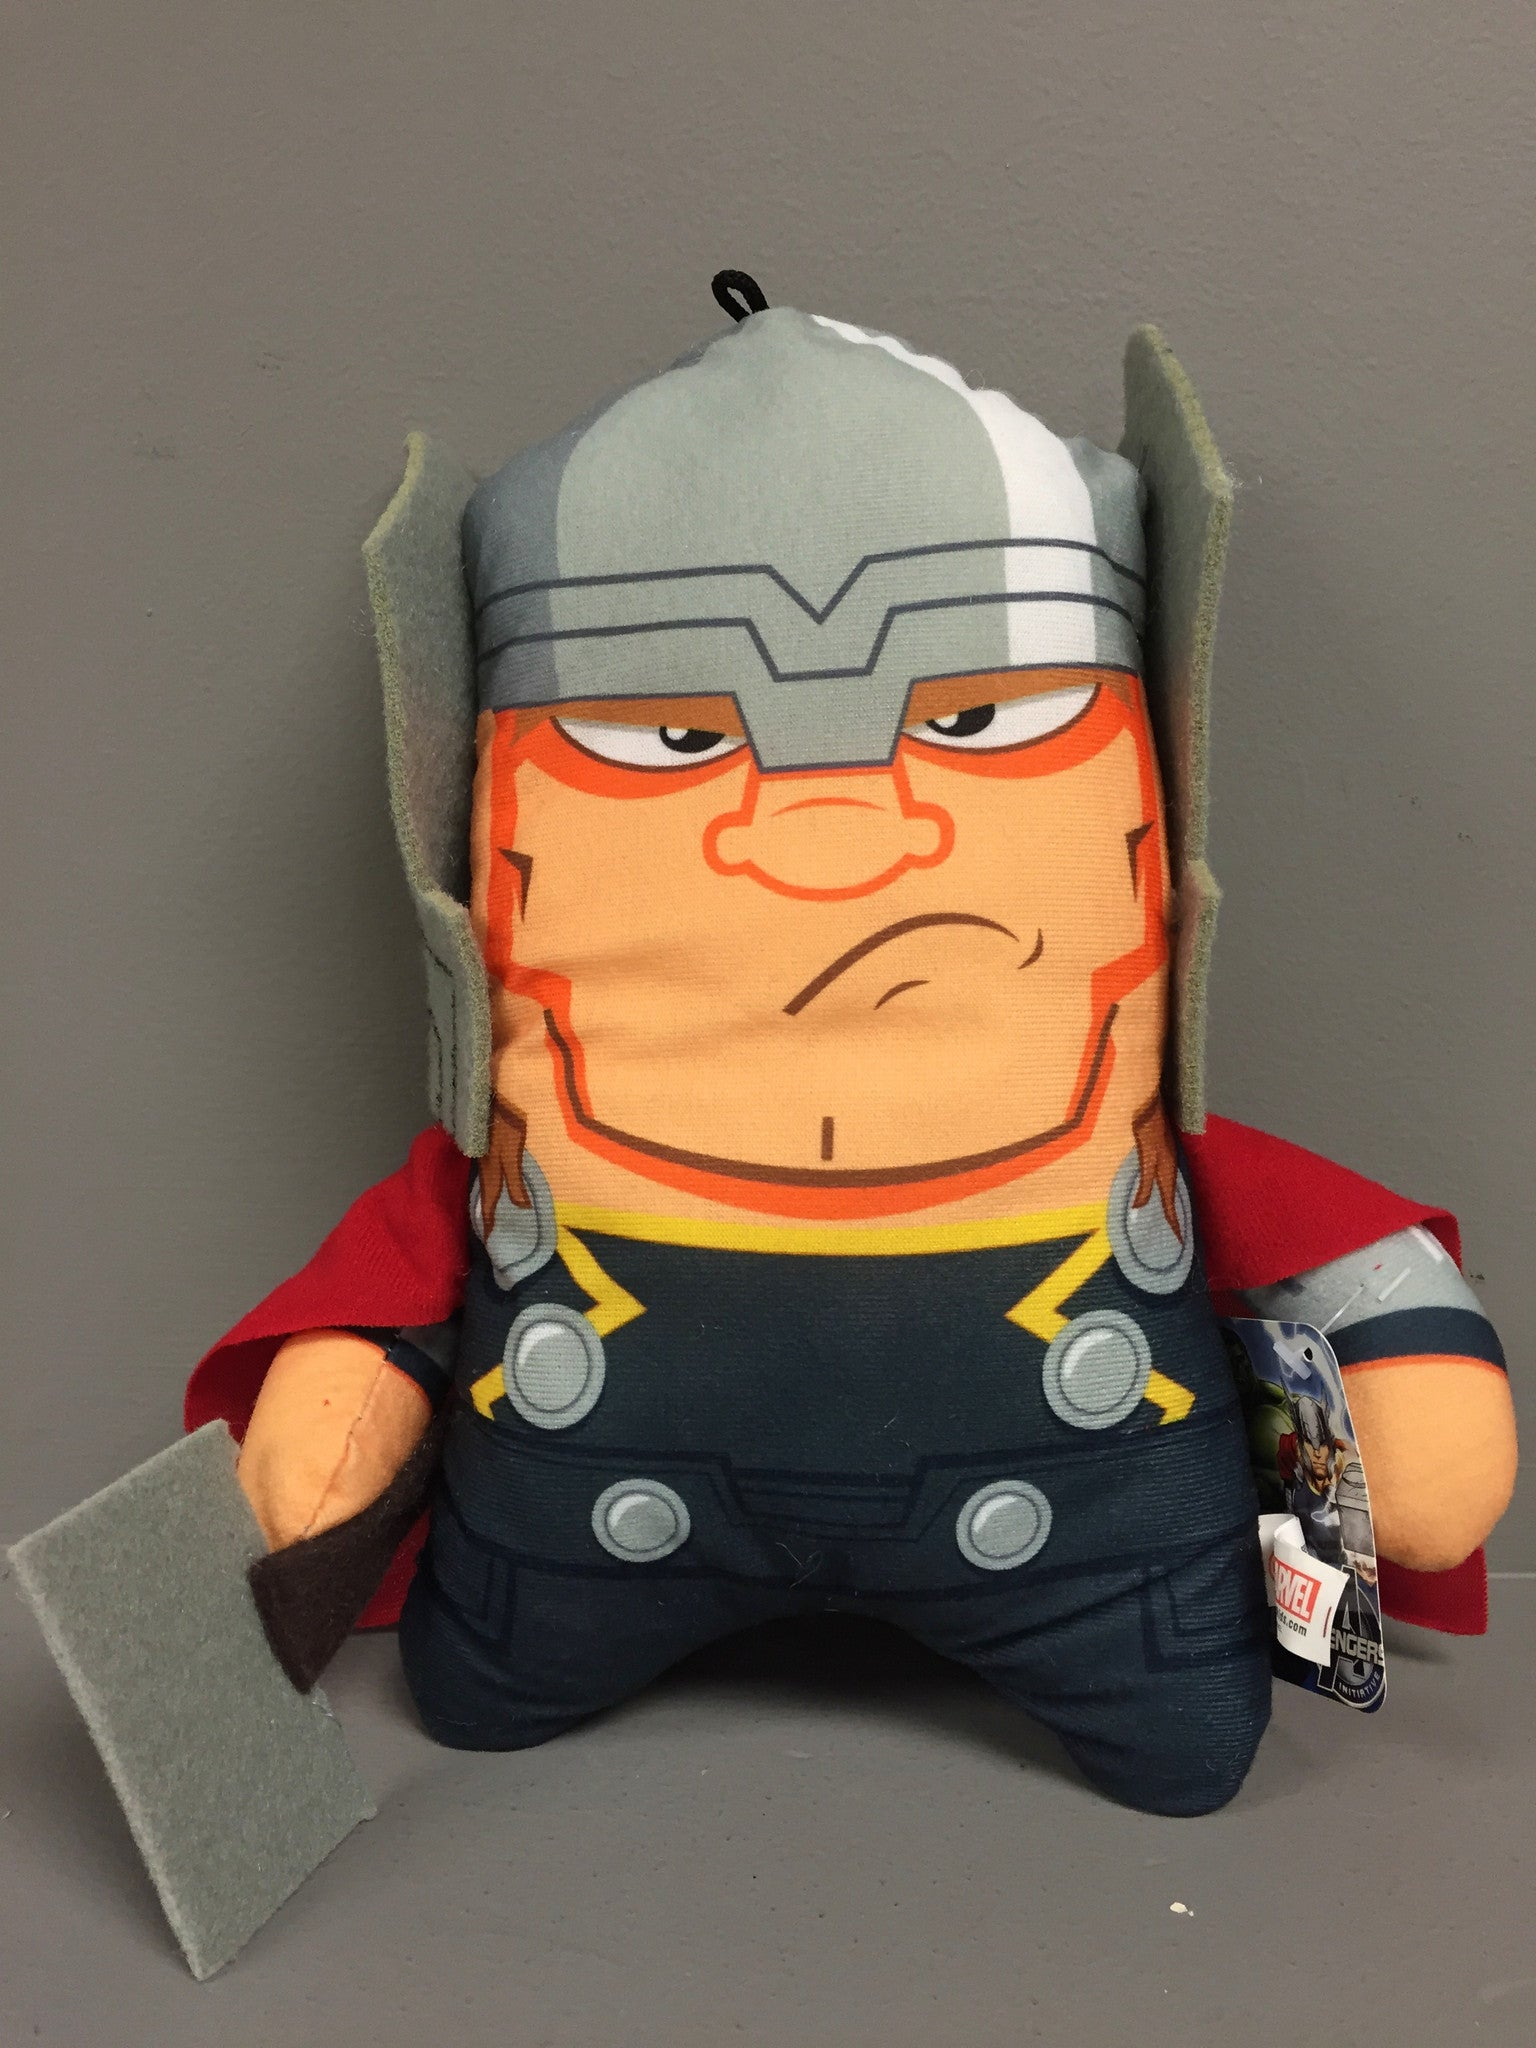 "Marvel Avengers 10"" Plush - Thor, Hulk, Capt. America, and Iron Man"